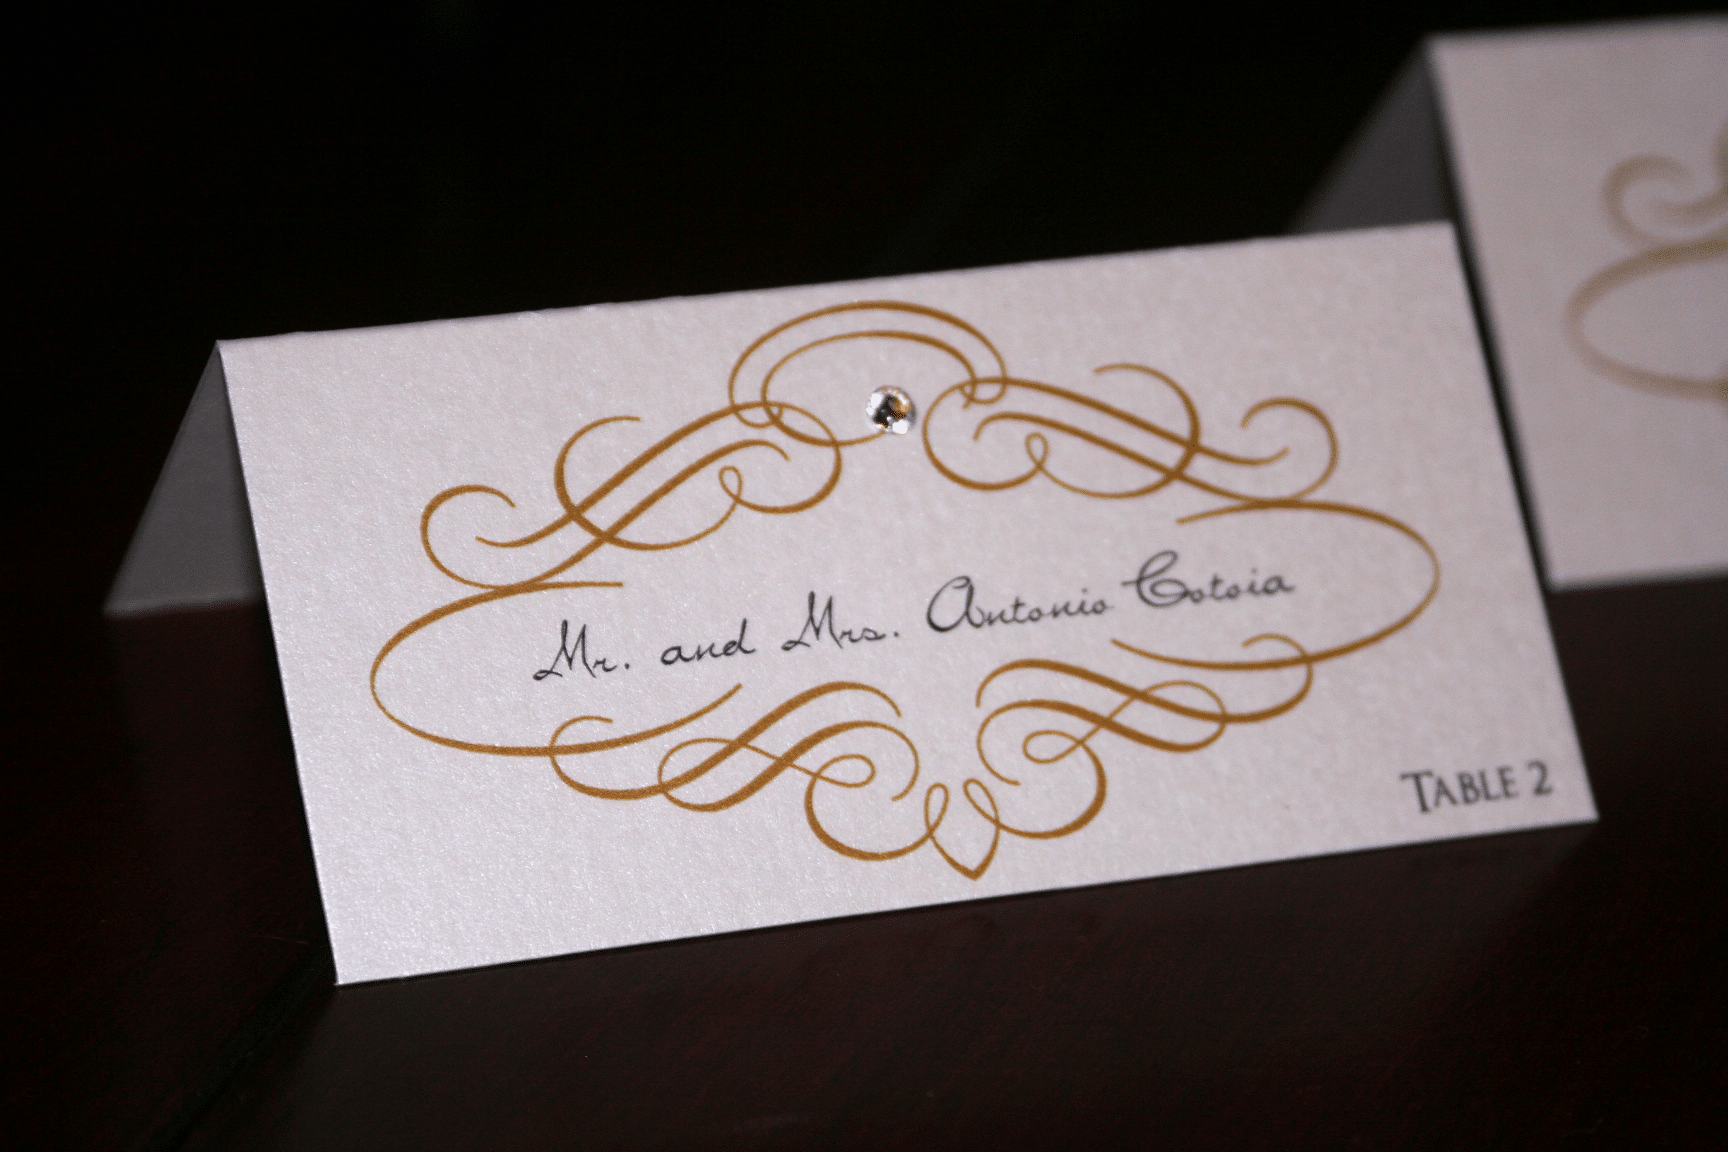 Gold Scroll Wedding Place Cards  Too Chic & Little Shab. Wedding Centerpieces For January. Garden Wedding Dresses Mother Of The Bride. Popular Wedding Reception Ideas. When To Send Out Wedding Invitations For A Holiday Weekend. Reportage Wedding Photography West Sussex. Short Casual Wedding Dresses Uk. Perfect Wedding Guide Overland Park Ks. Wedding Photo Ideas Unique